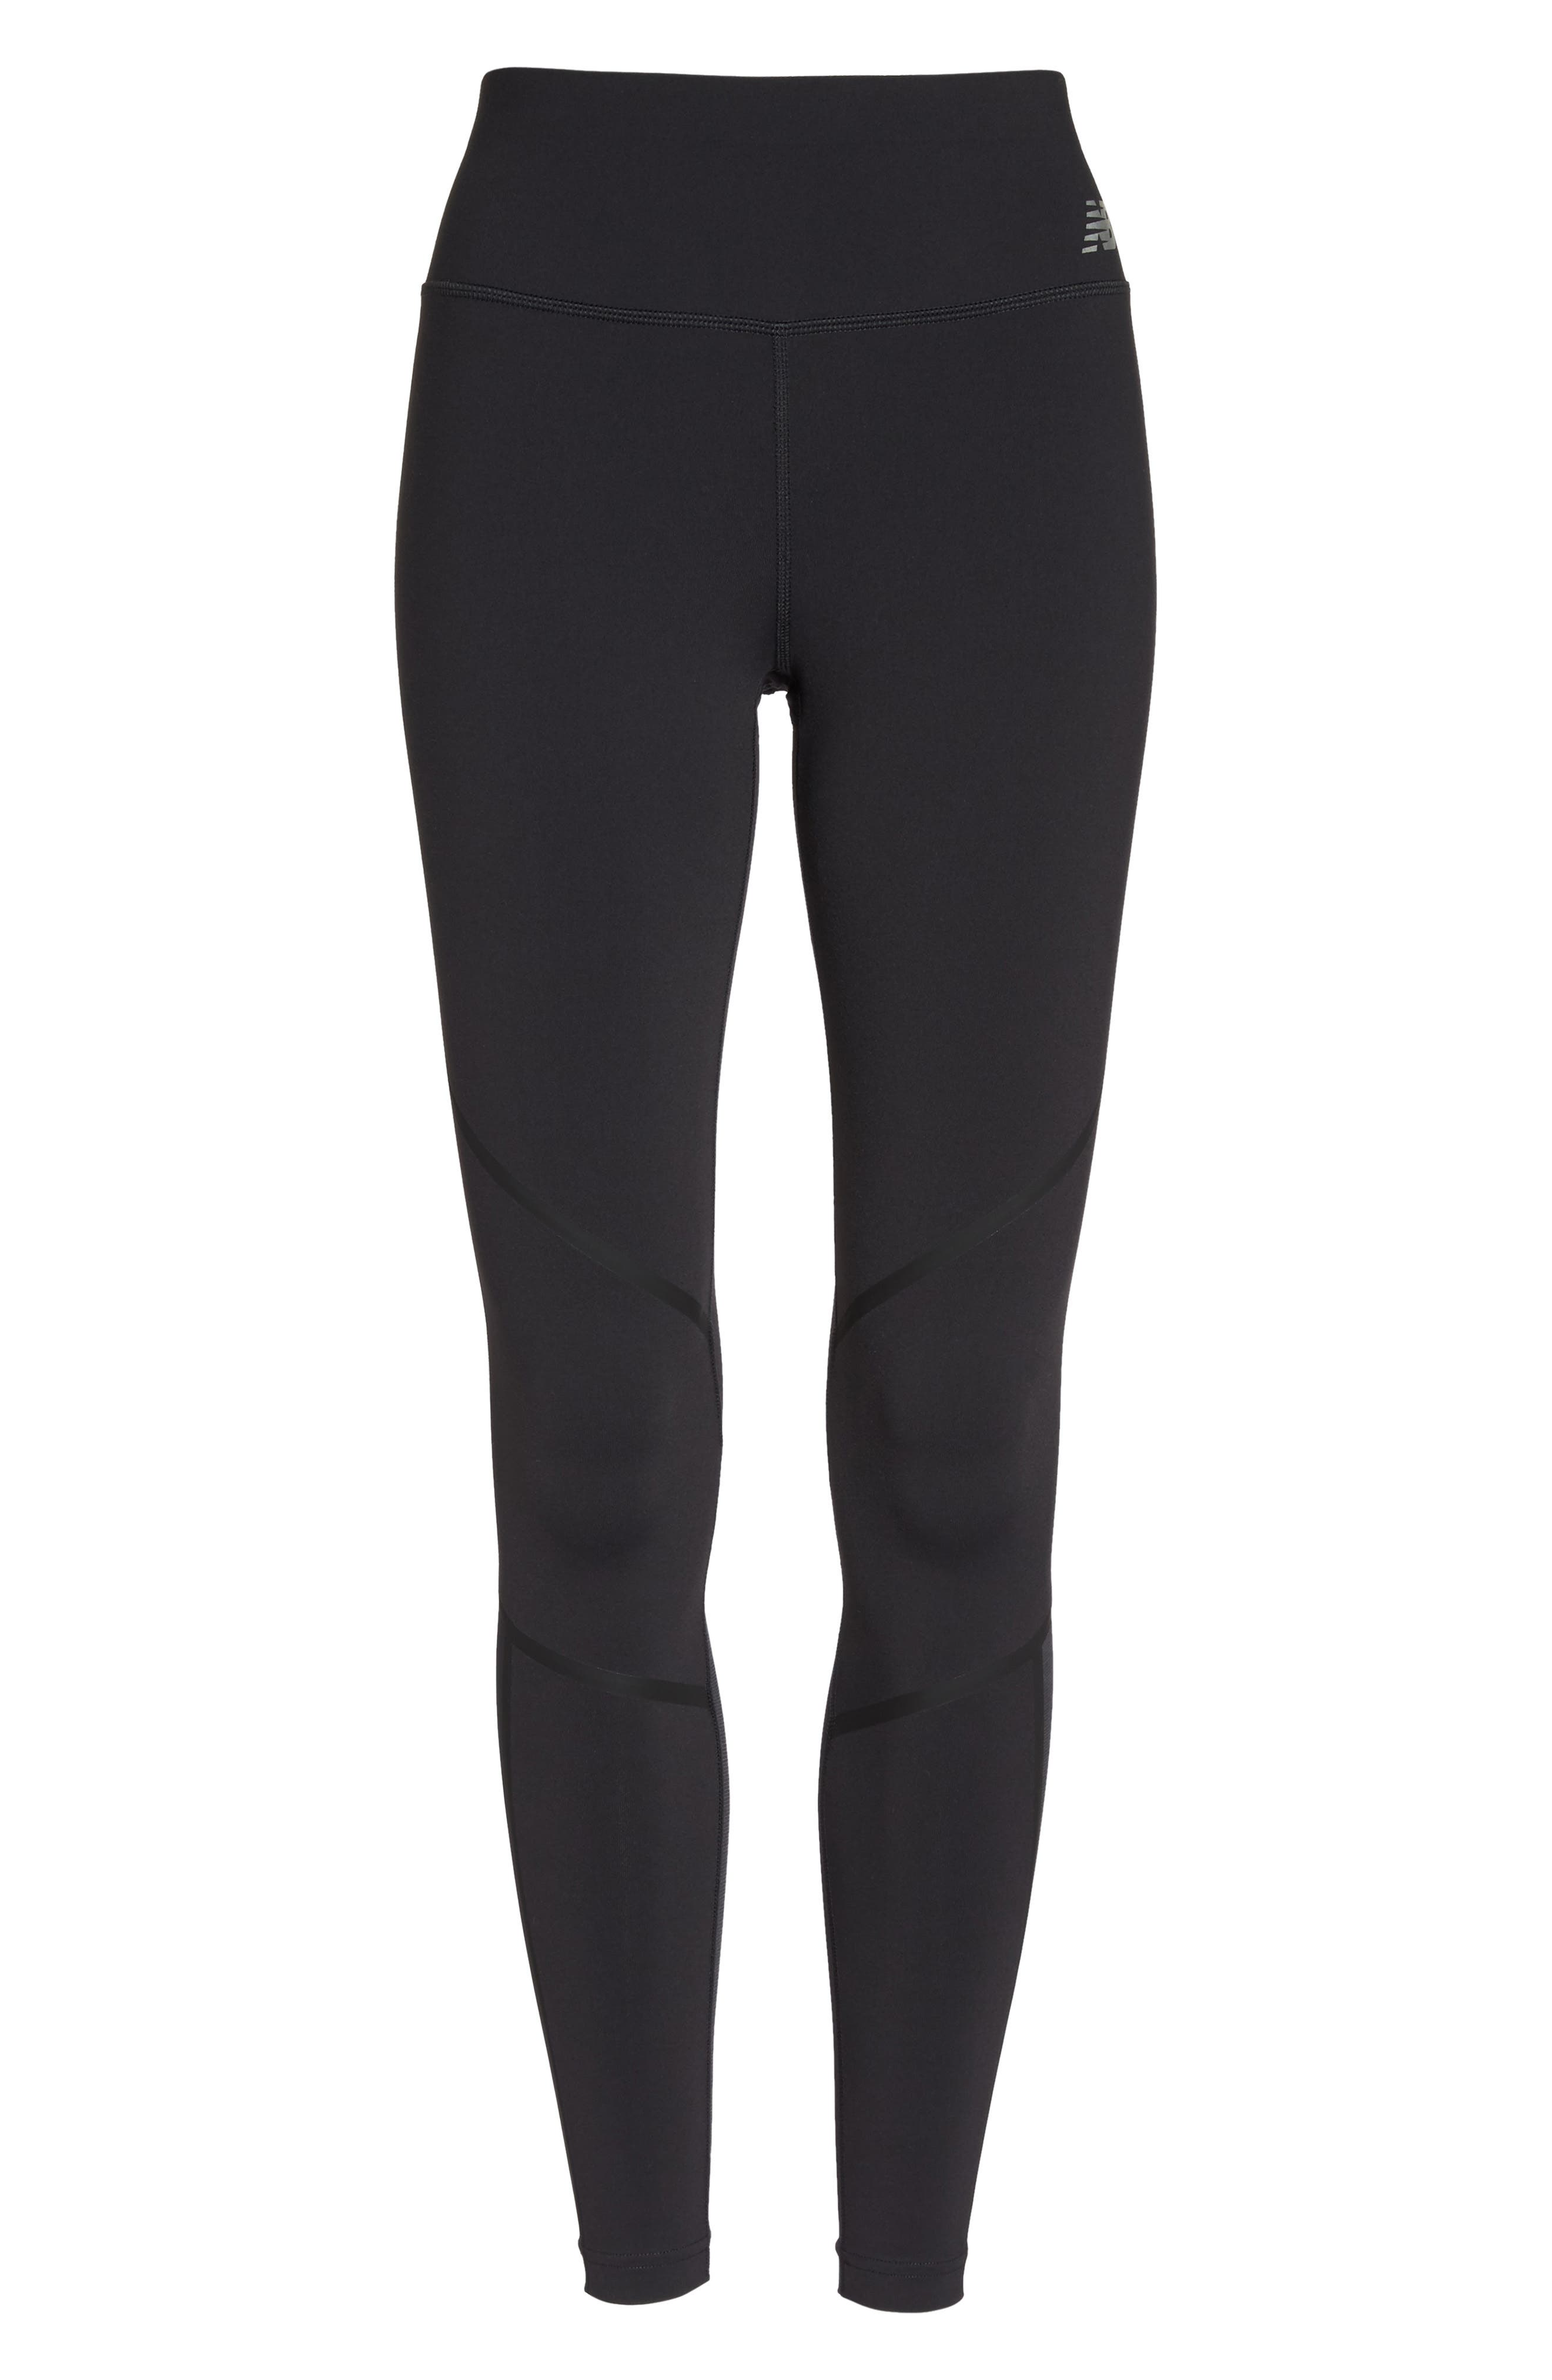 Intensity Tights,                             Alternate thumbnail 7, color,                             001